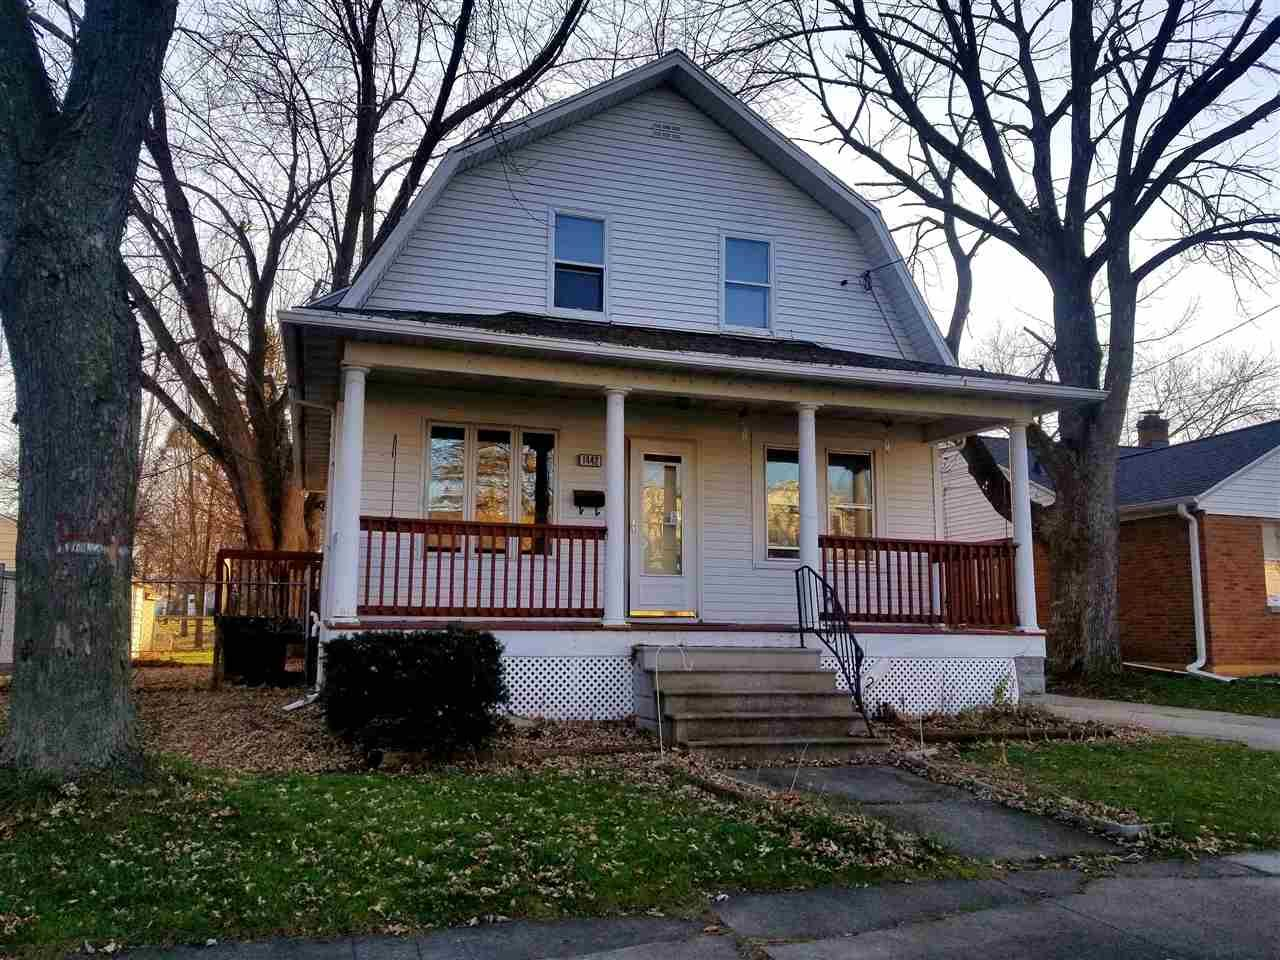 1442 CHICAGO Street, Green Bay, WI 54301 - MLS#: 50228513